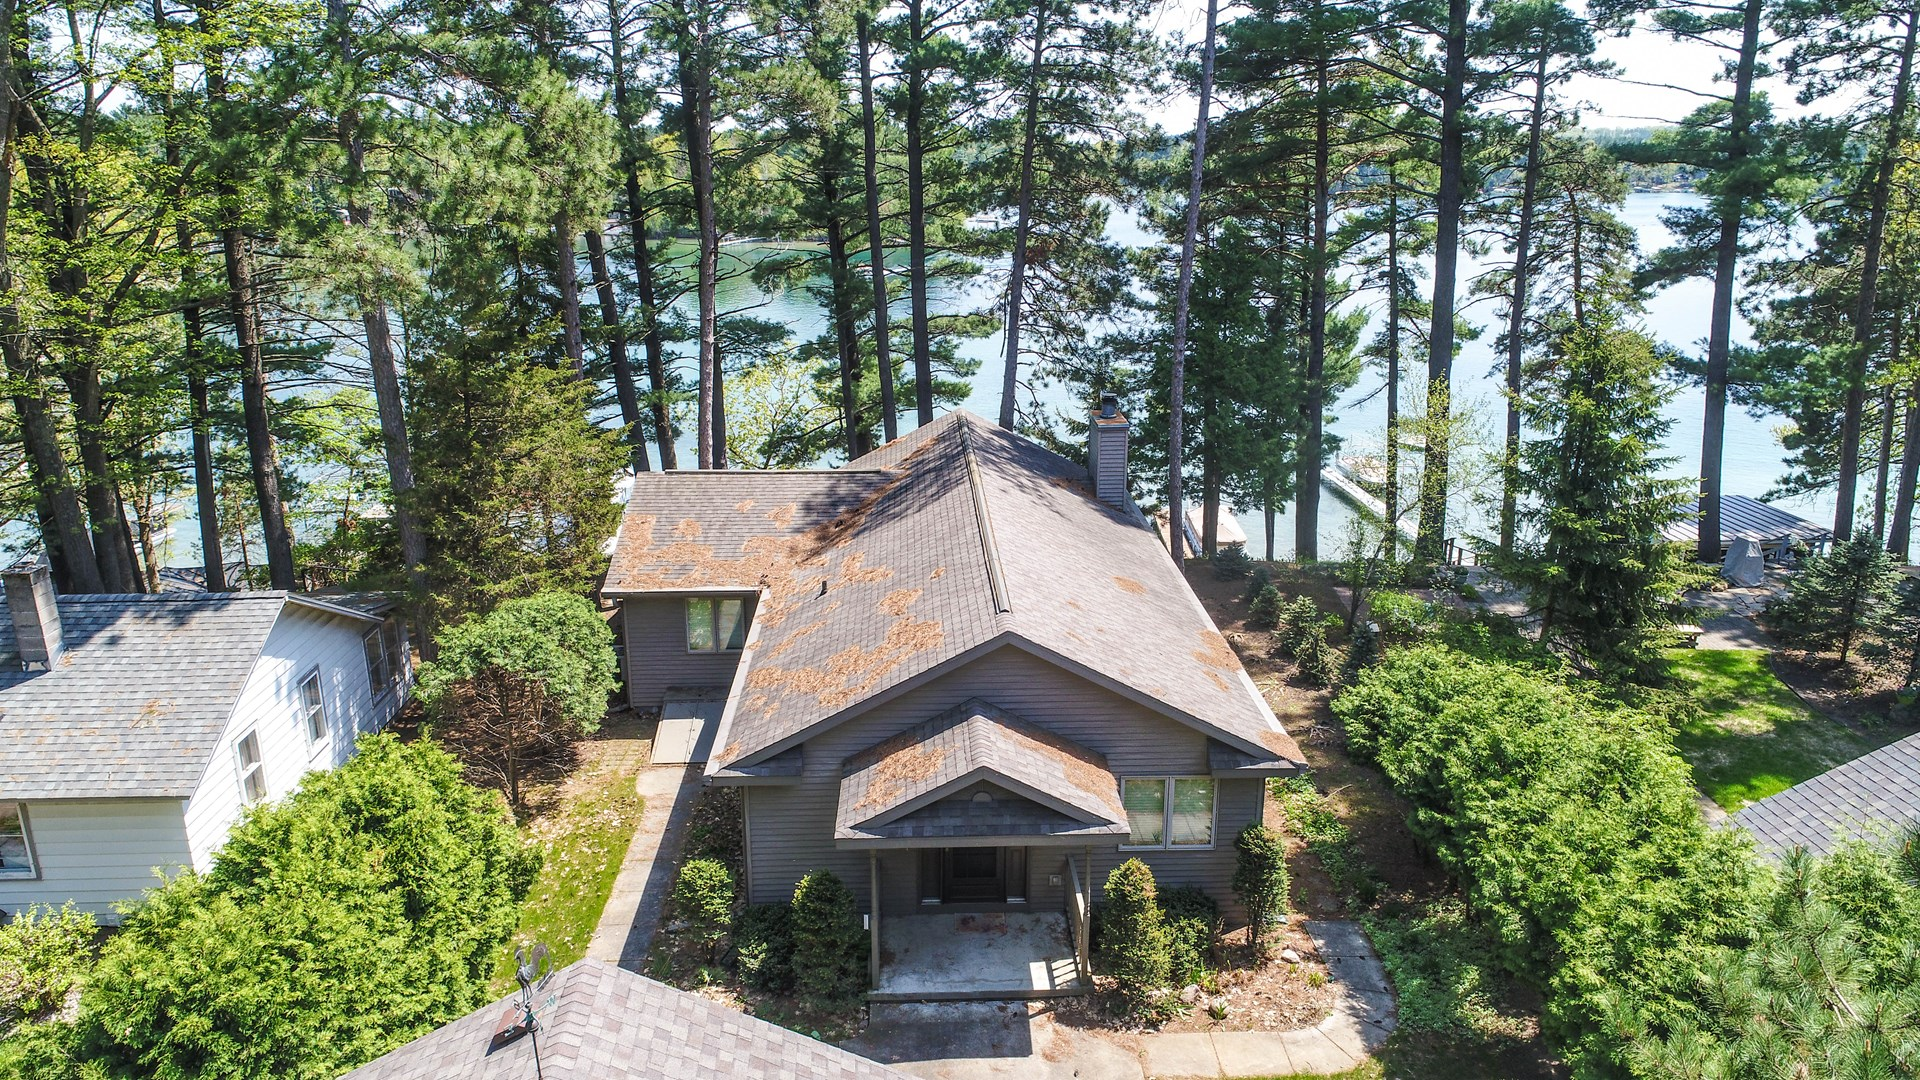 Lakefront Home for sale Waupaca, WI, Chain O' Lakes